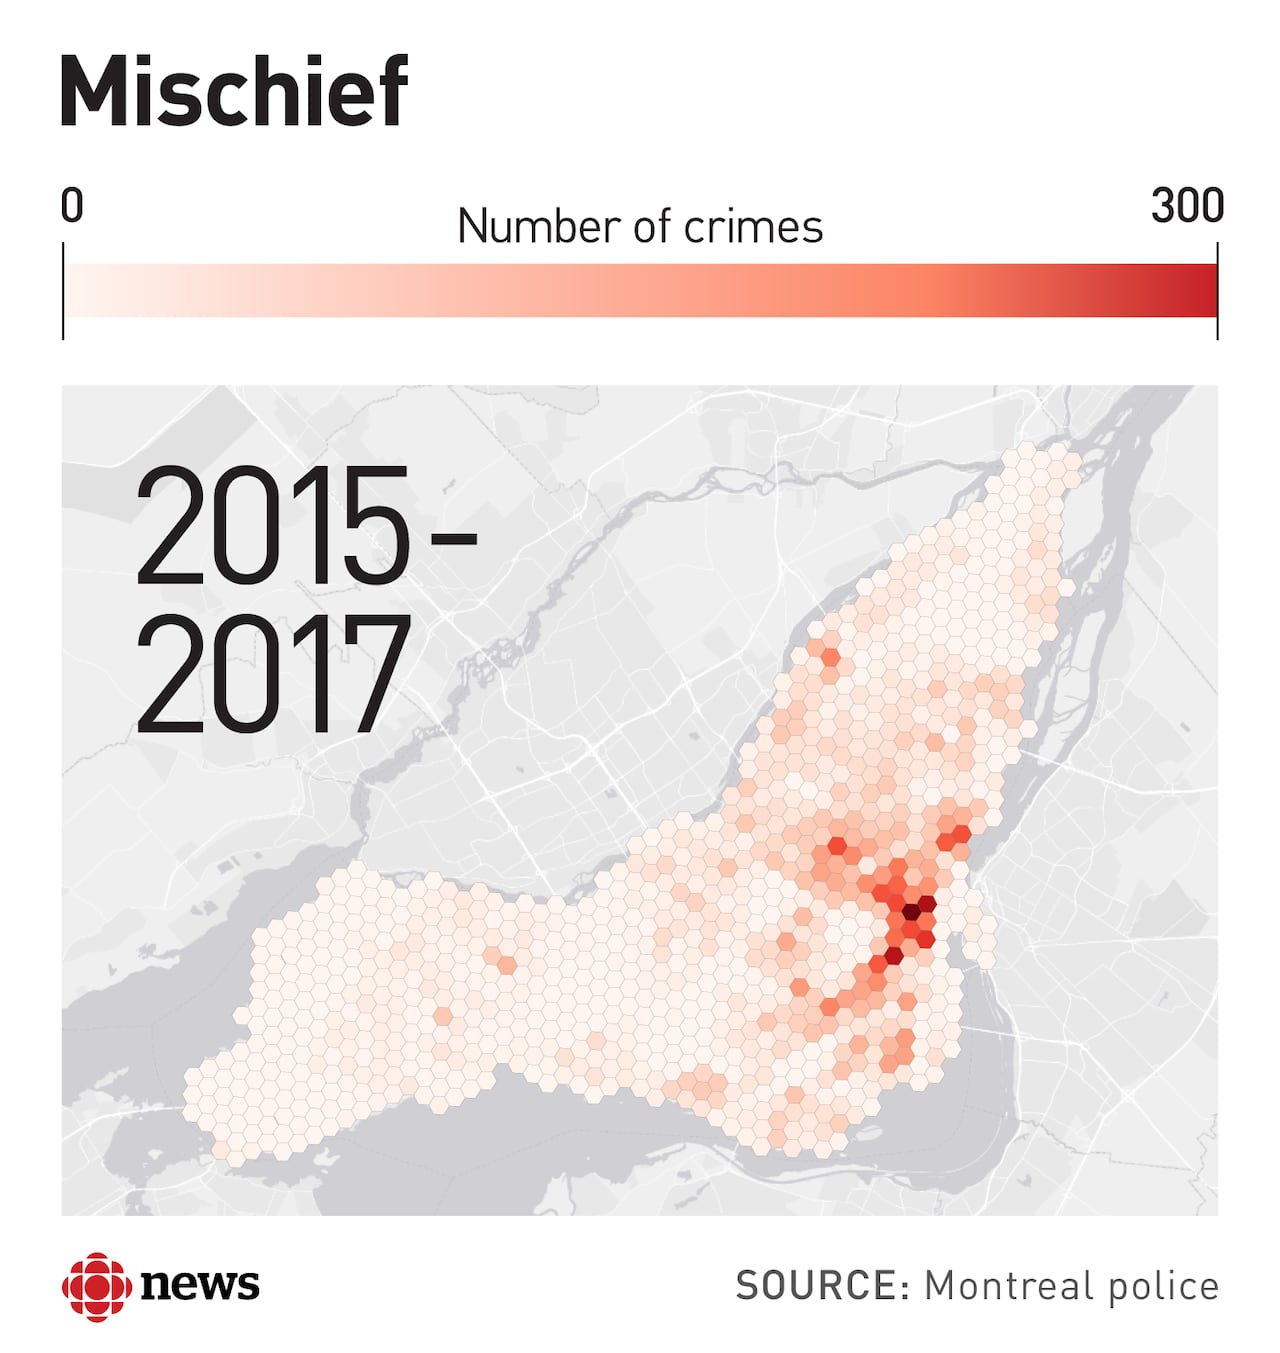 What 3 years of detailed crime data tells us about how safe a city